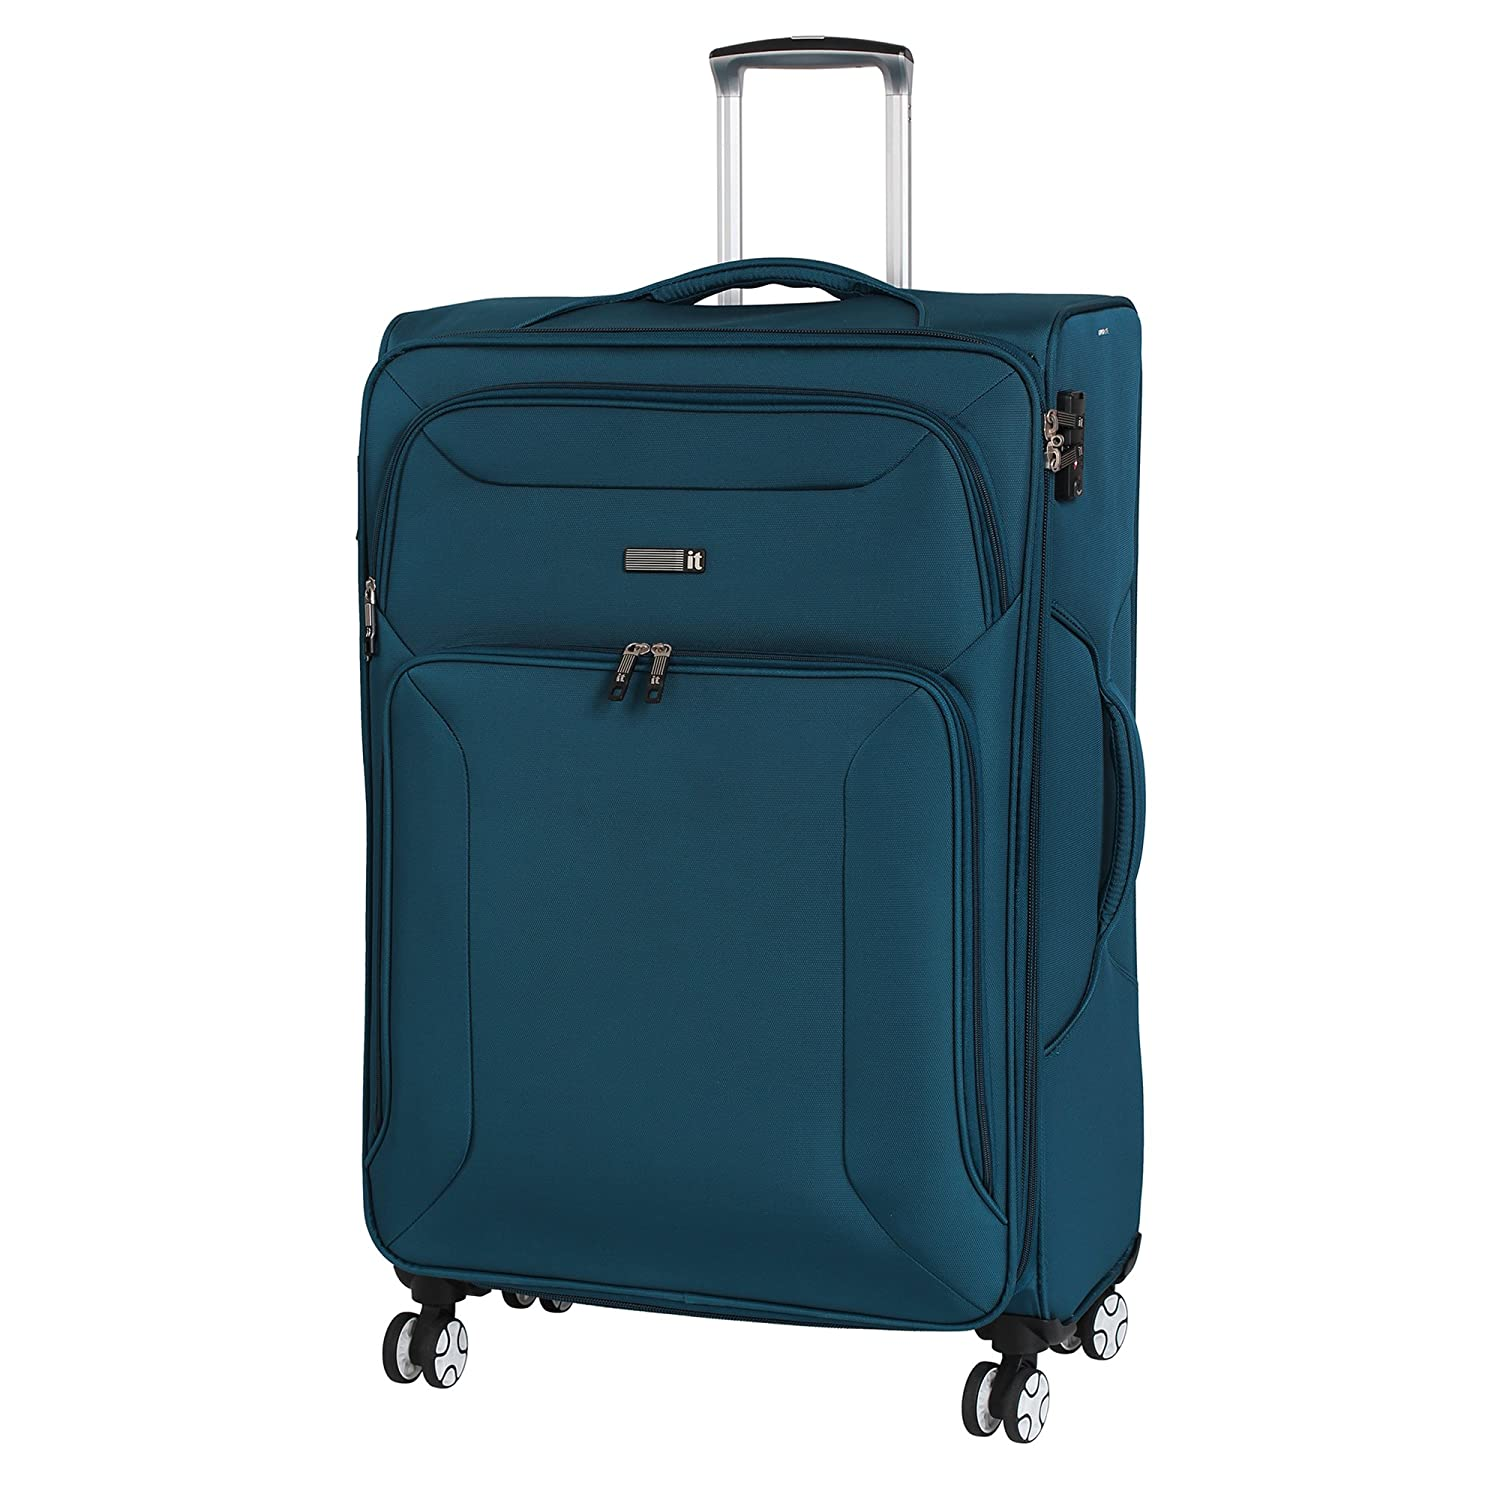 IT Luggage 12-2177-08UOL29-S129 Fascia 31.5 8 Wheel Spinner, Ruby Wine, Checked - Large